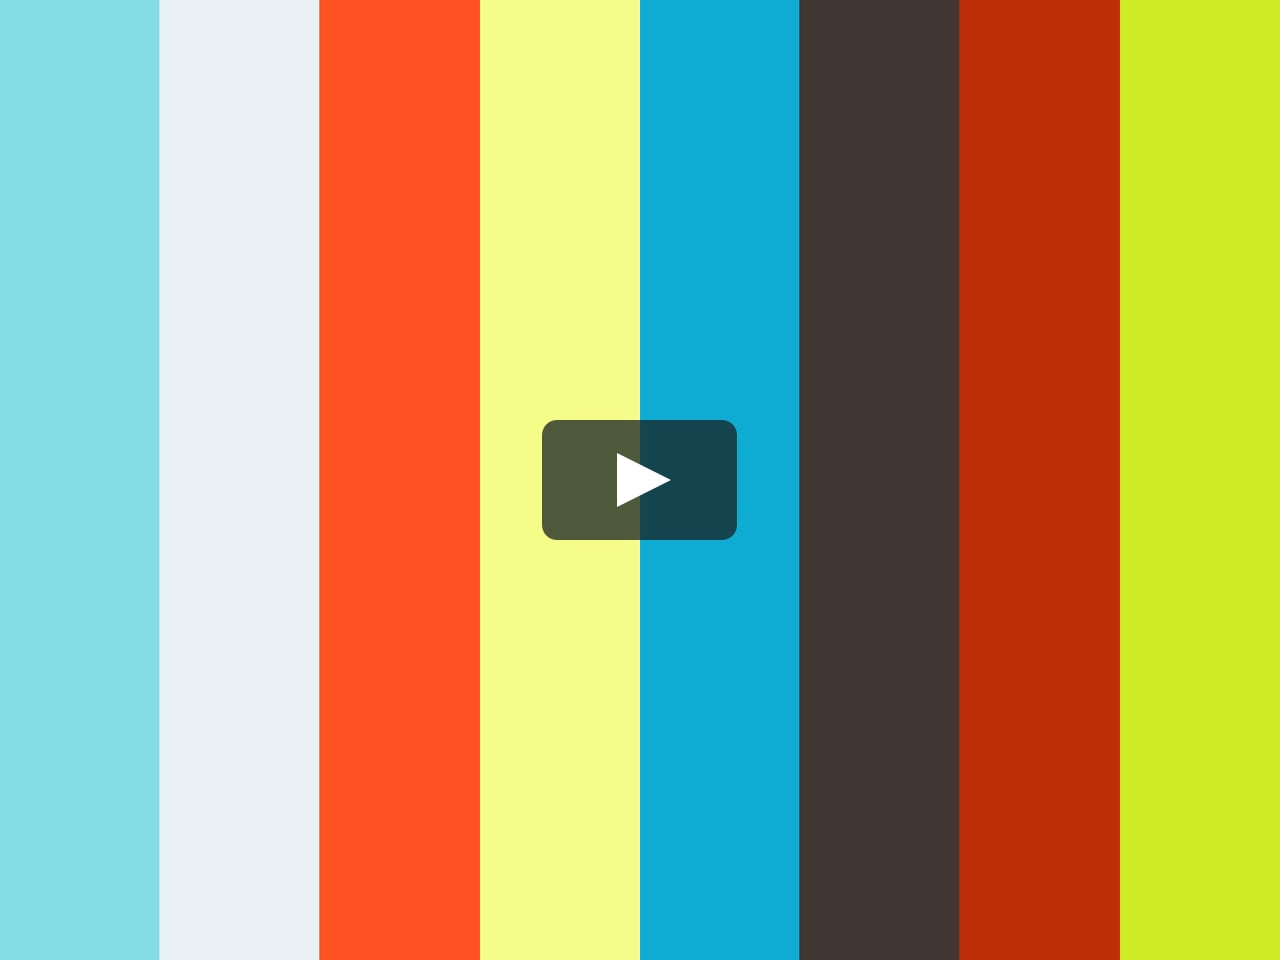 Banana boat song ukulele lesson tutorial by ukulele mike on vimeo hexwebz Image collections